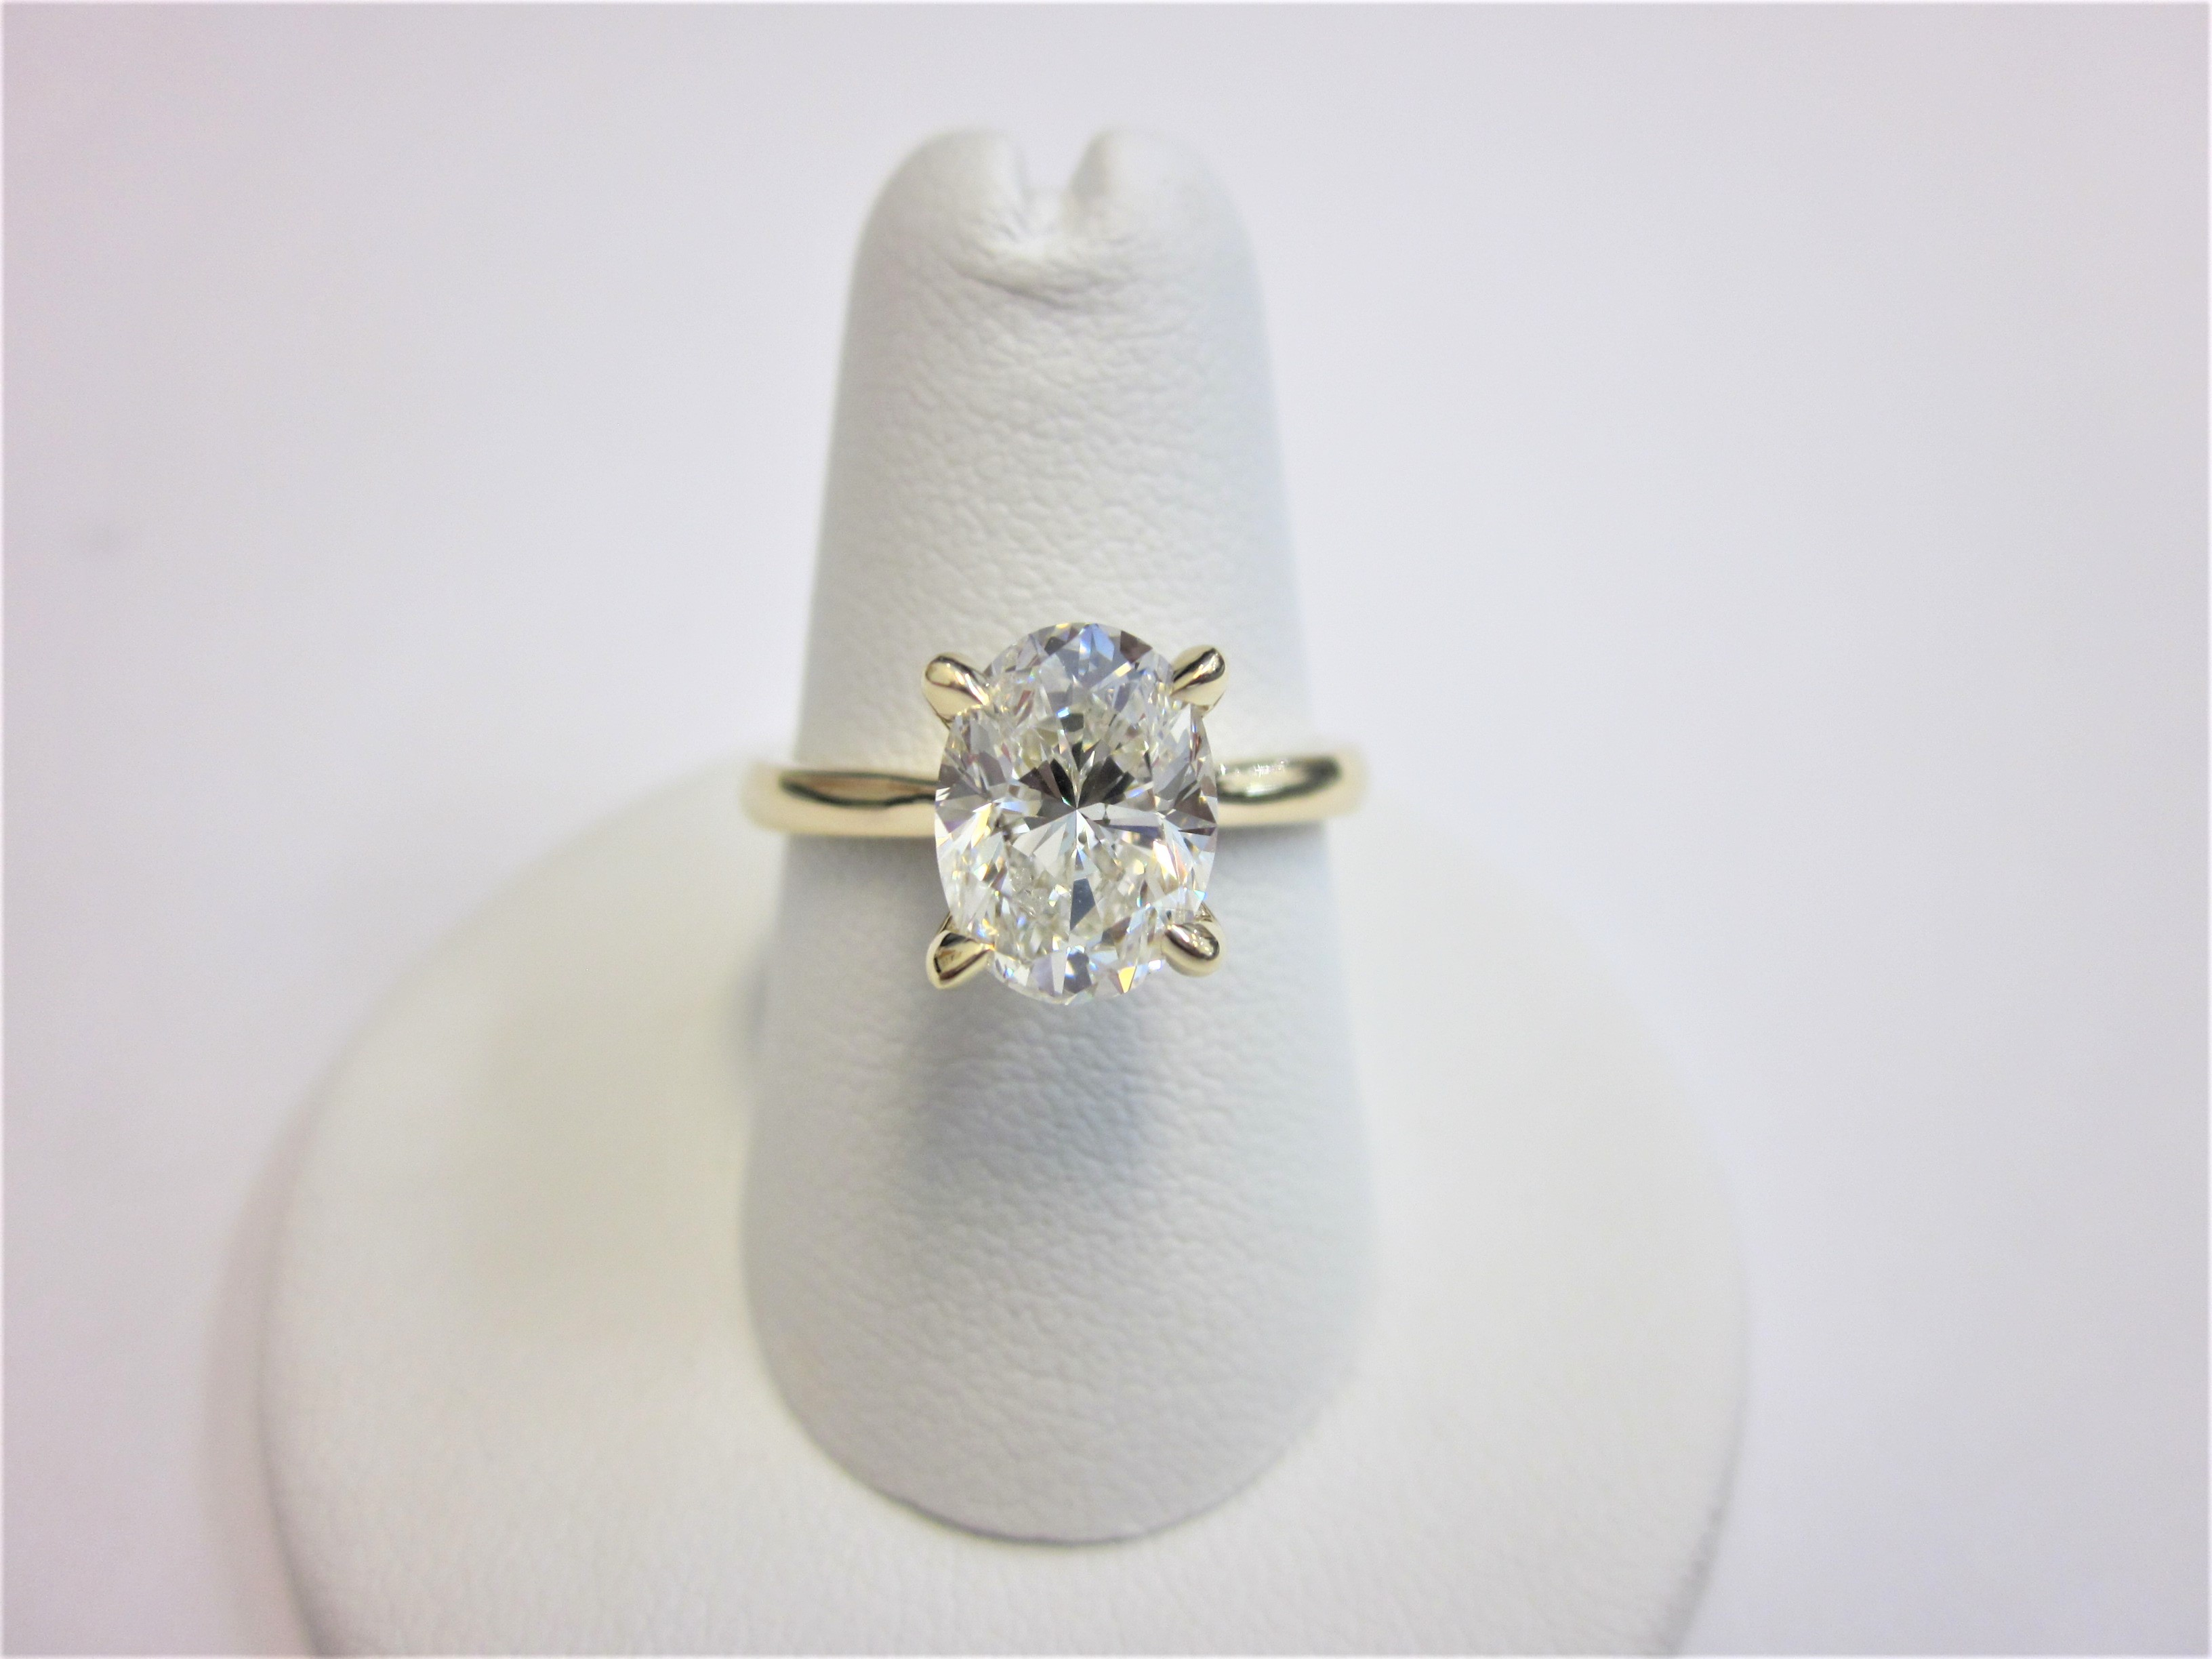 a pave legacy by rings band brilliant diamond parted engagement gold cut collections ring with round setting graff white